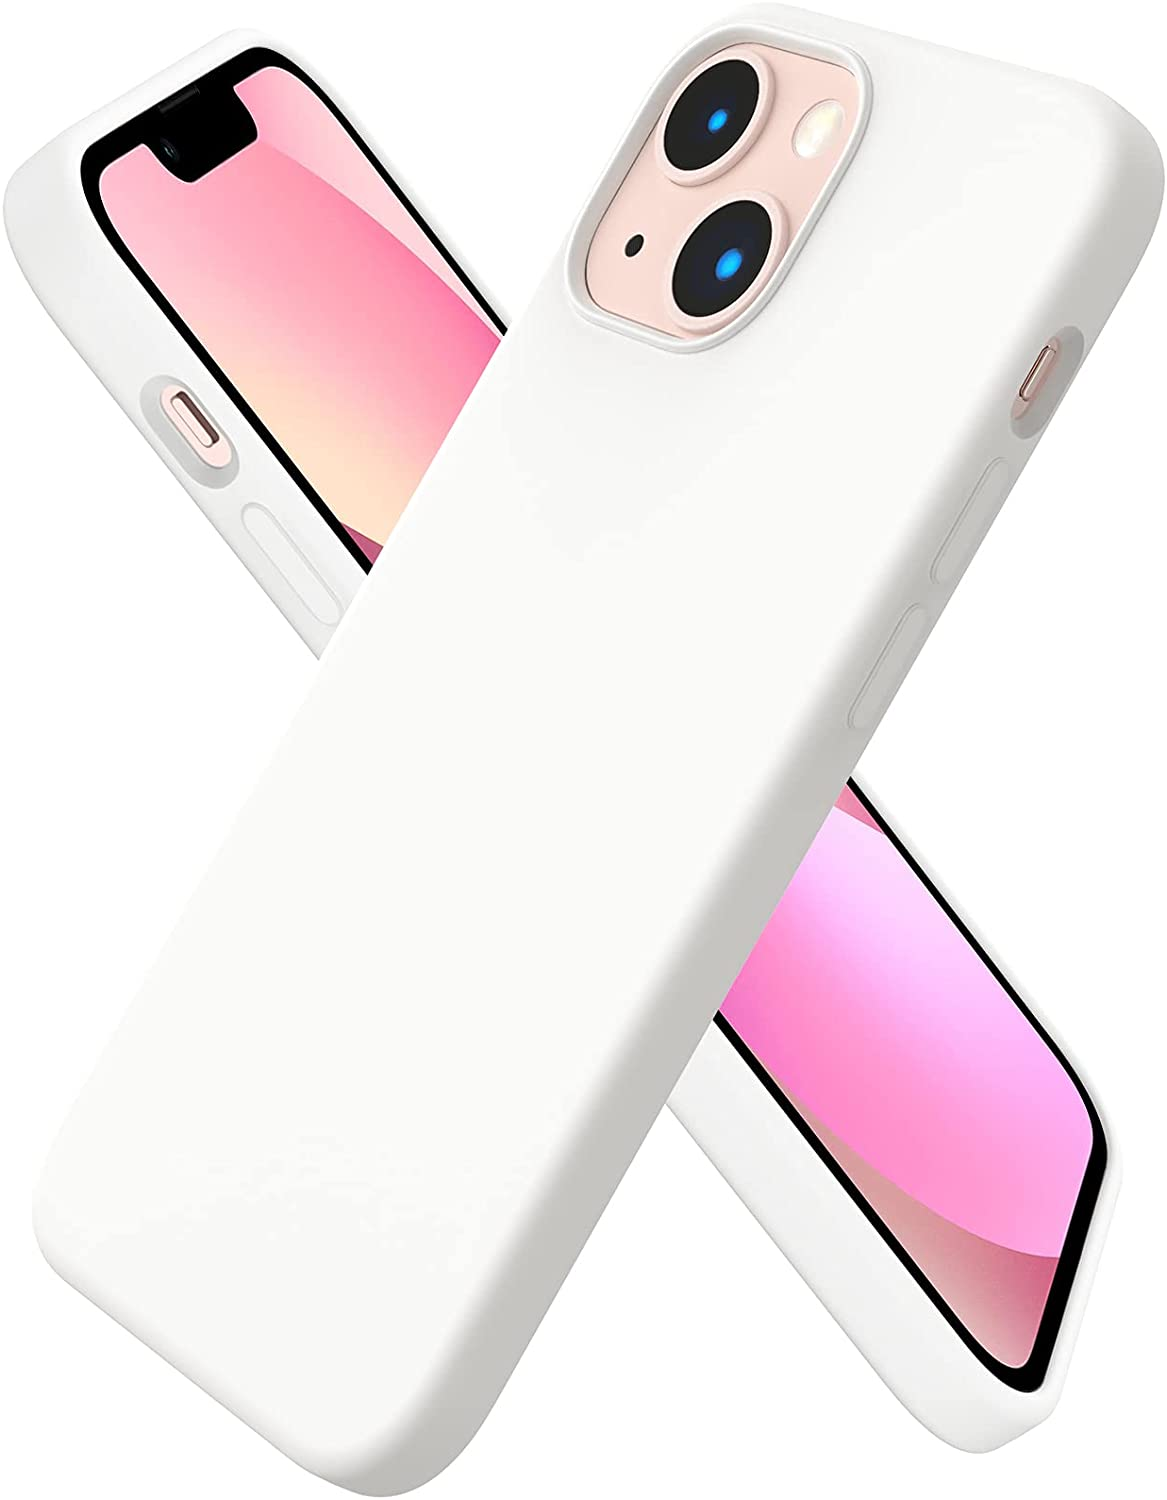 ORNARTO Compatible with iPhone 13 Mini Case, Slim Liquid Silicone 3 Layers Full Covered Soft Gel Rubber with Microfiber Case Cover 5.4 inch-White